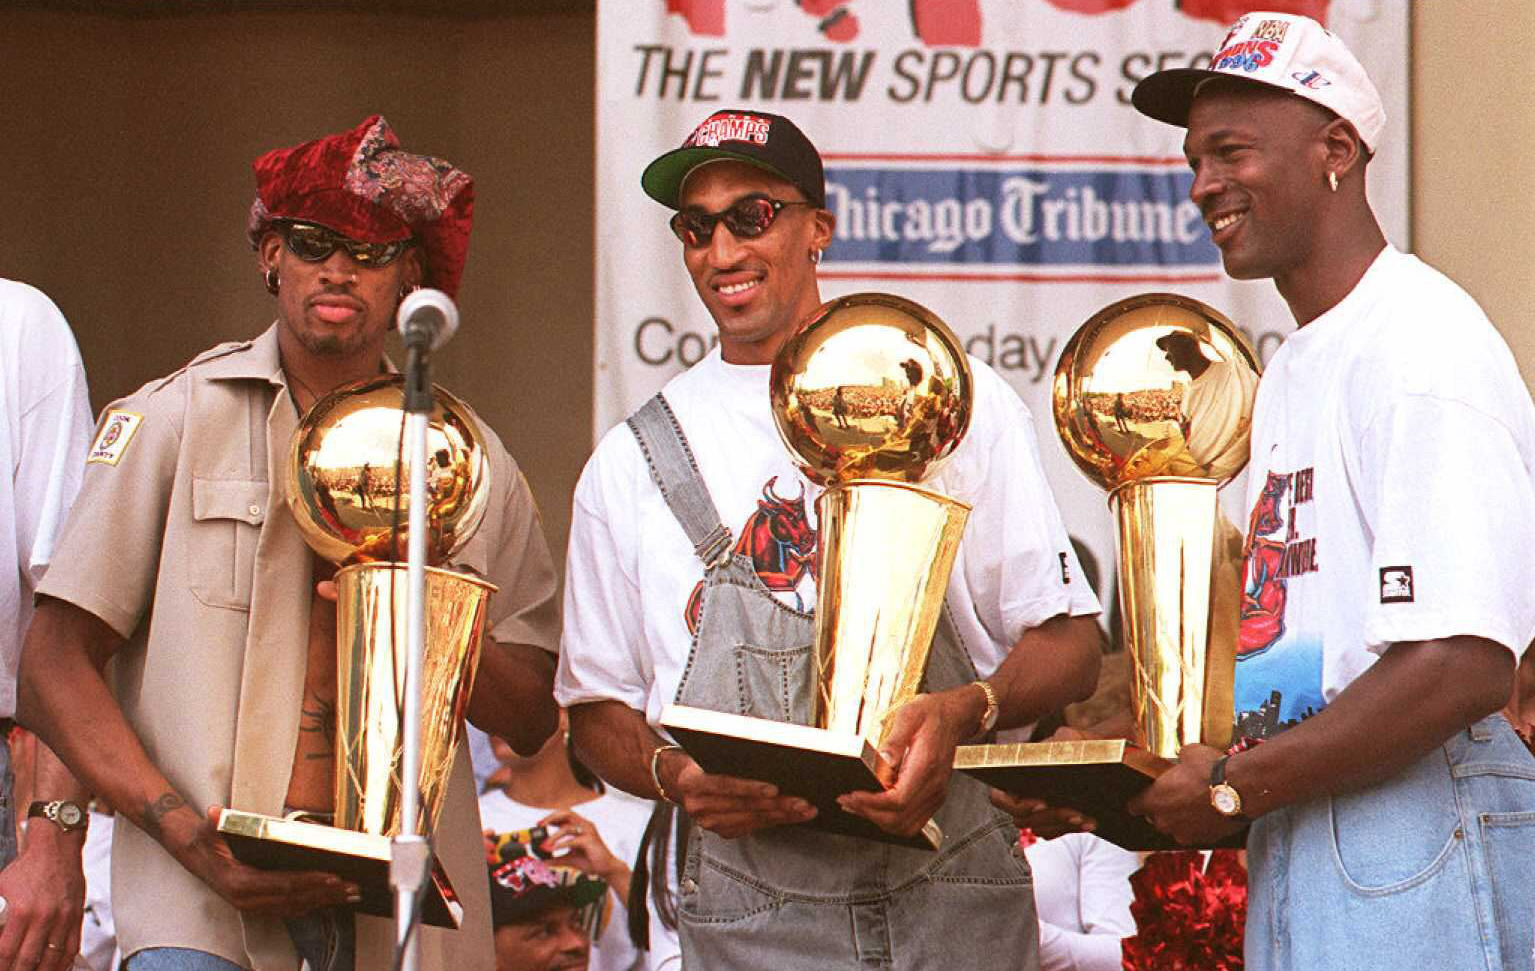 Dennis Rodman, Scottie Pippen and Michael Jordan in 1996.